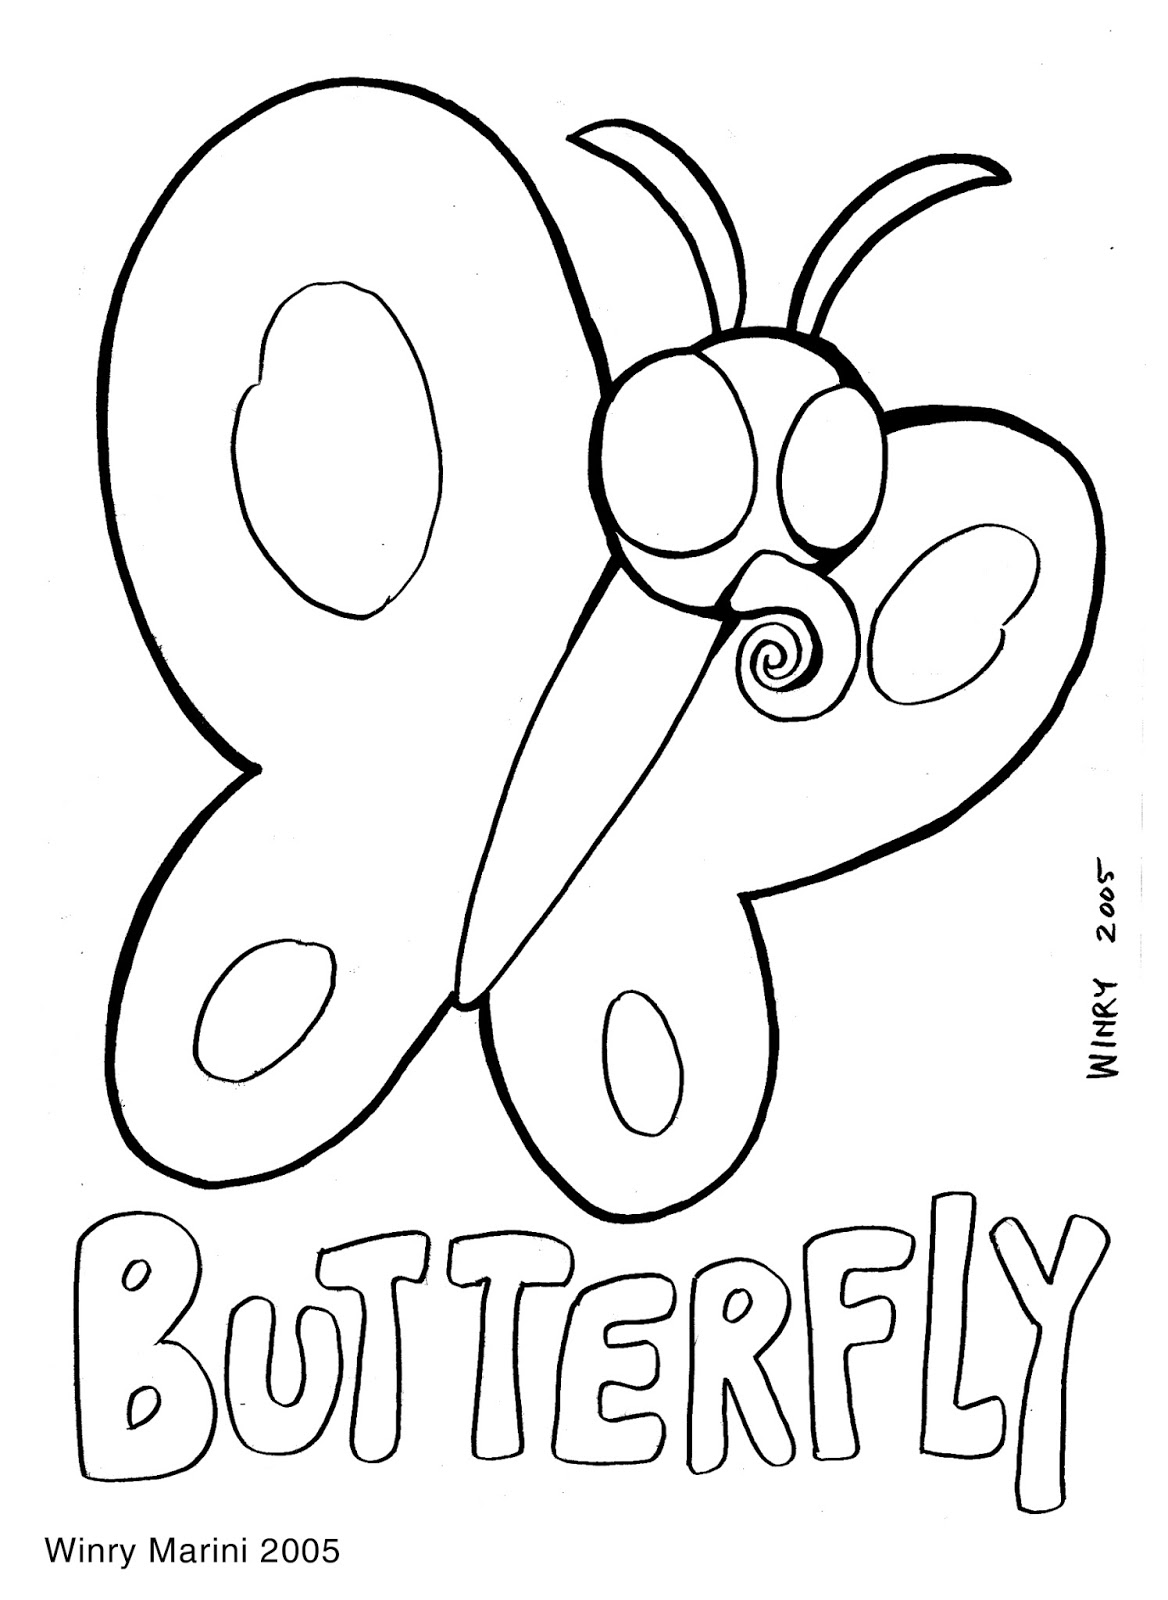 Butterfly Coloring Page by Winry Marini 2005